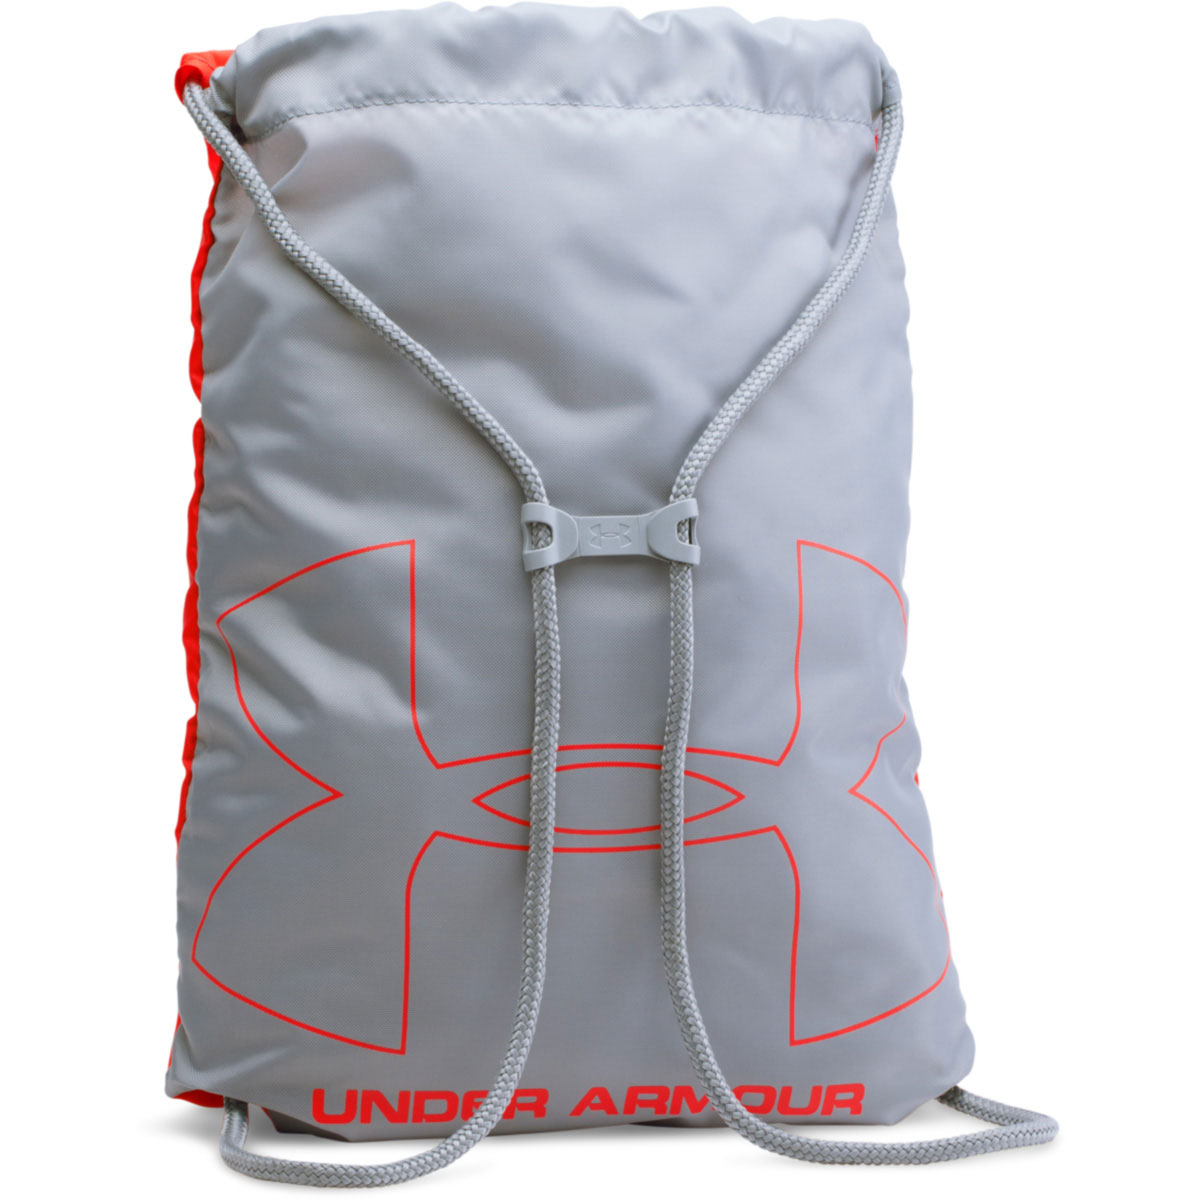 ba3f70241b77 Under Armour 2019 UA Ozsee Sackpack Drawstring Bag Gym School ...